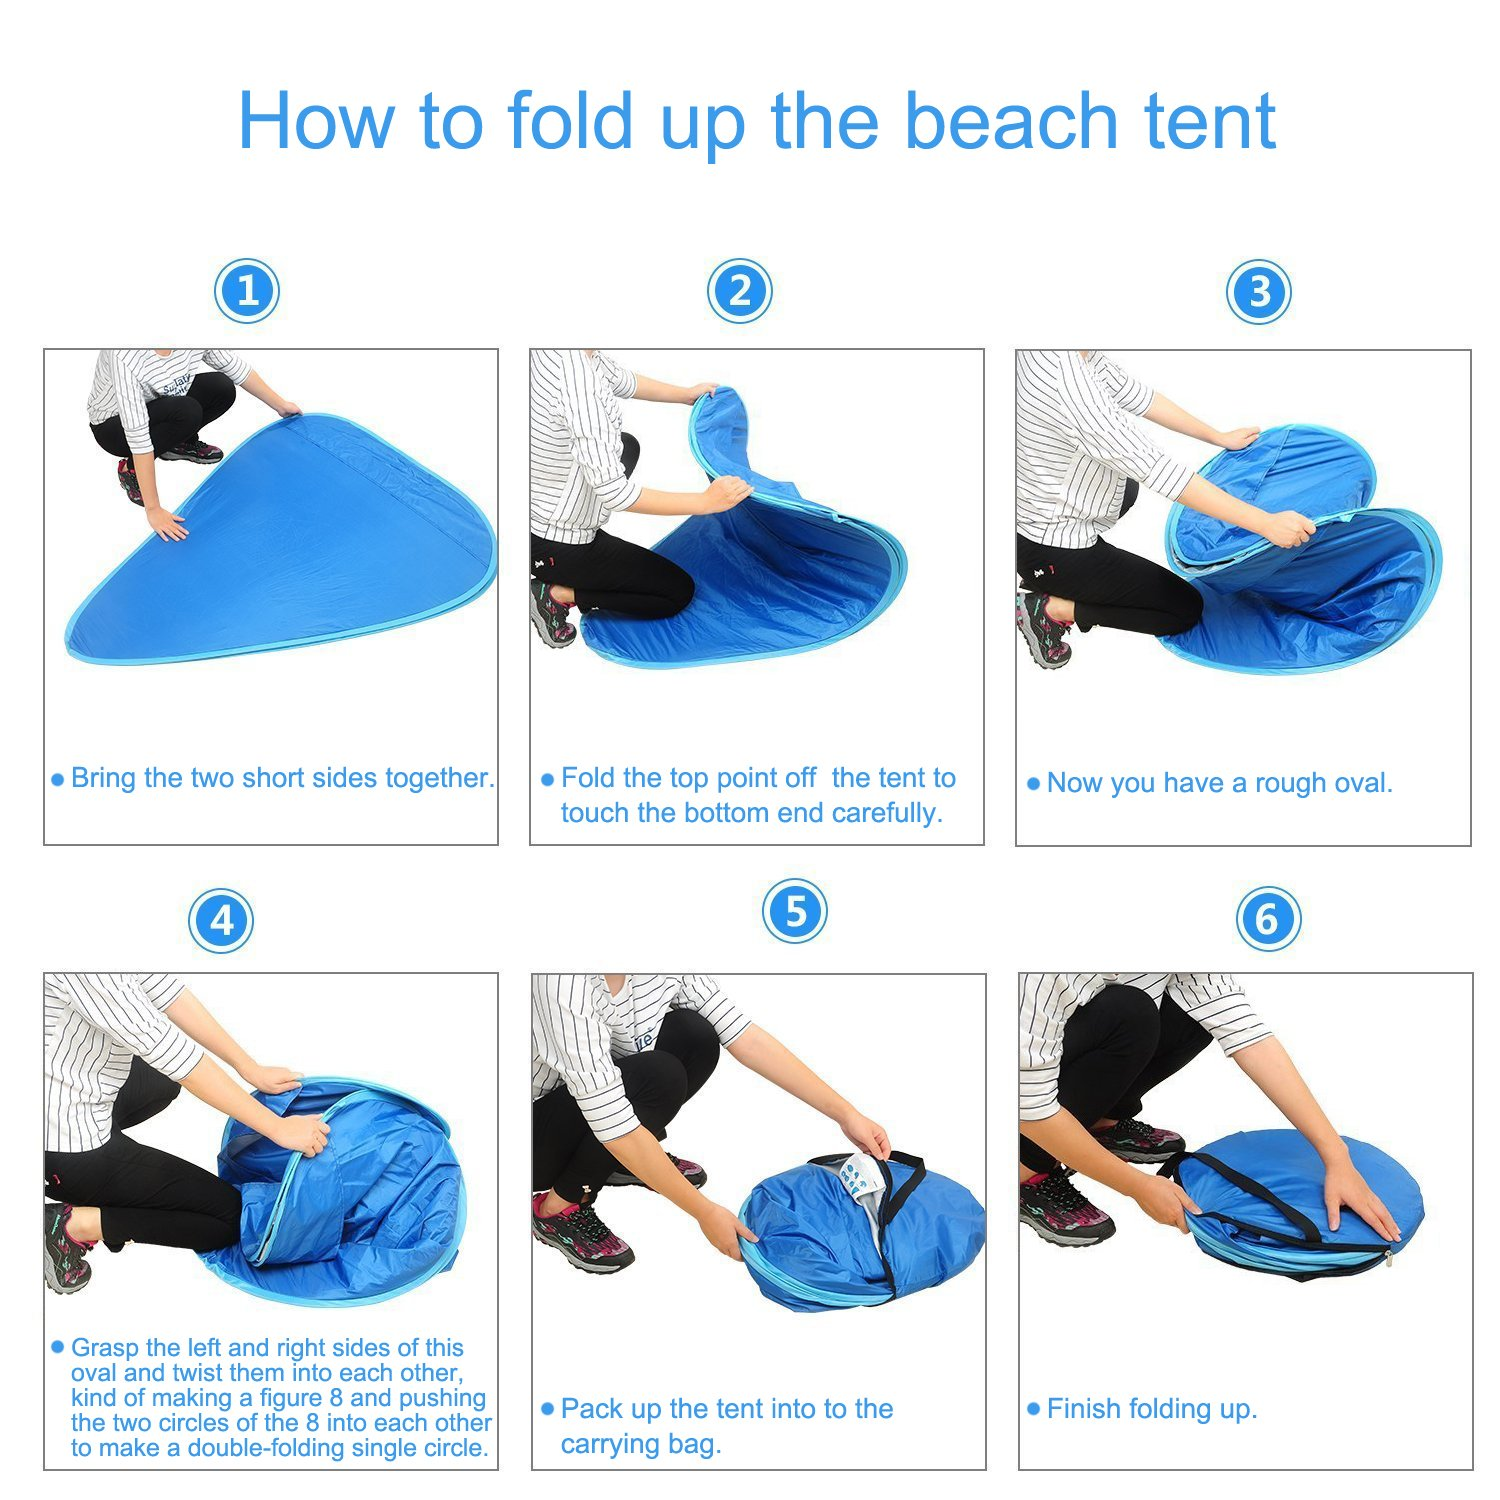 Oversized Pop UP Beach Tent Sun SheltersAutomatic XXL Lightweight Portable Family Anti UV Cabana(2-3 person)Set Up and Fold Up in Seconds Amazon.co.uk ...  sc 1 st  Amazon UK & Oversized Pop UP Beach Tent Sun SheltersAutomatic XXL Lightweight ...